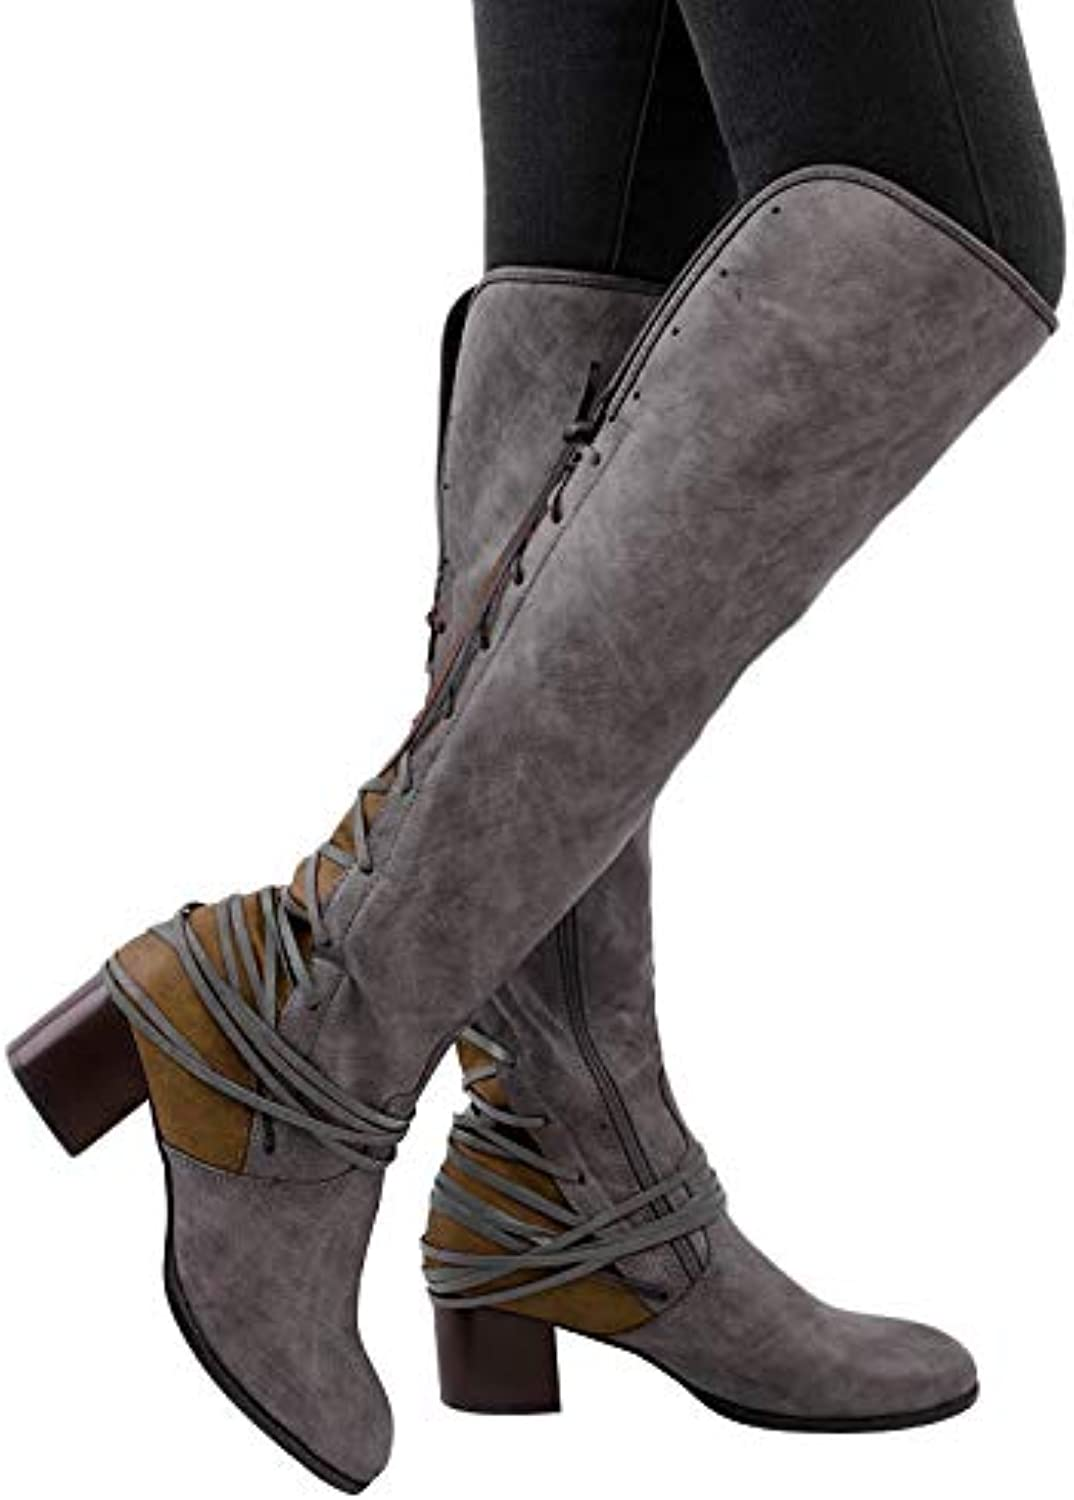 8d9b248053 VANDIMI Wide Calf Knee High Boots for Women Winter Fashion Low Block Heel  shoes Over The